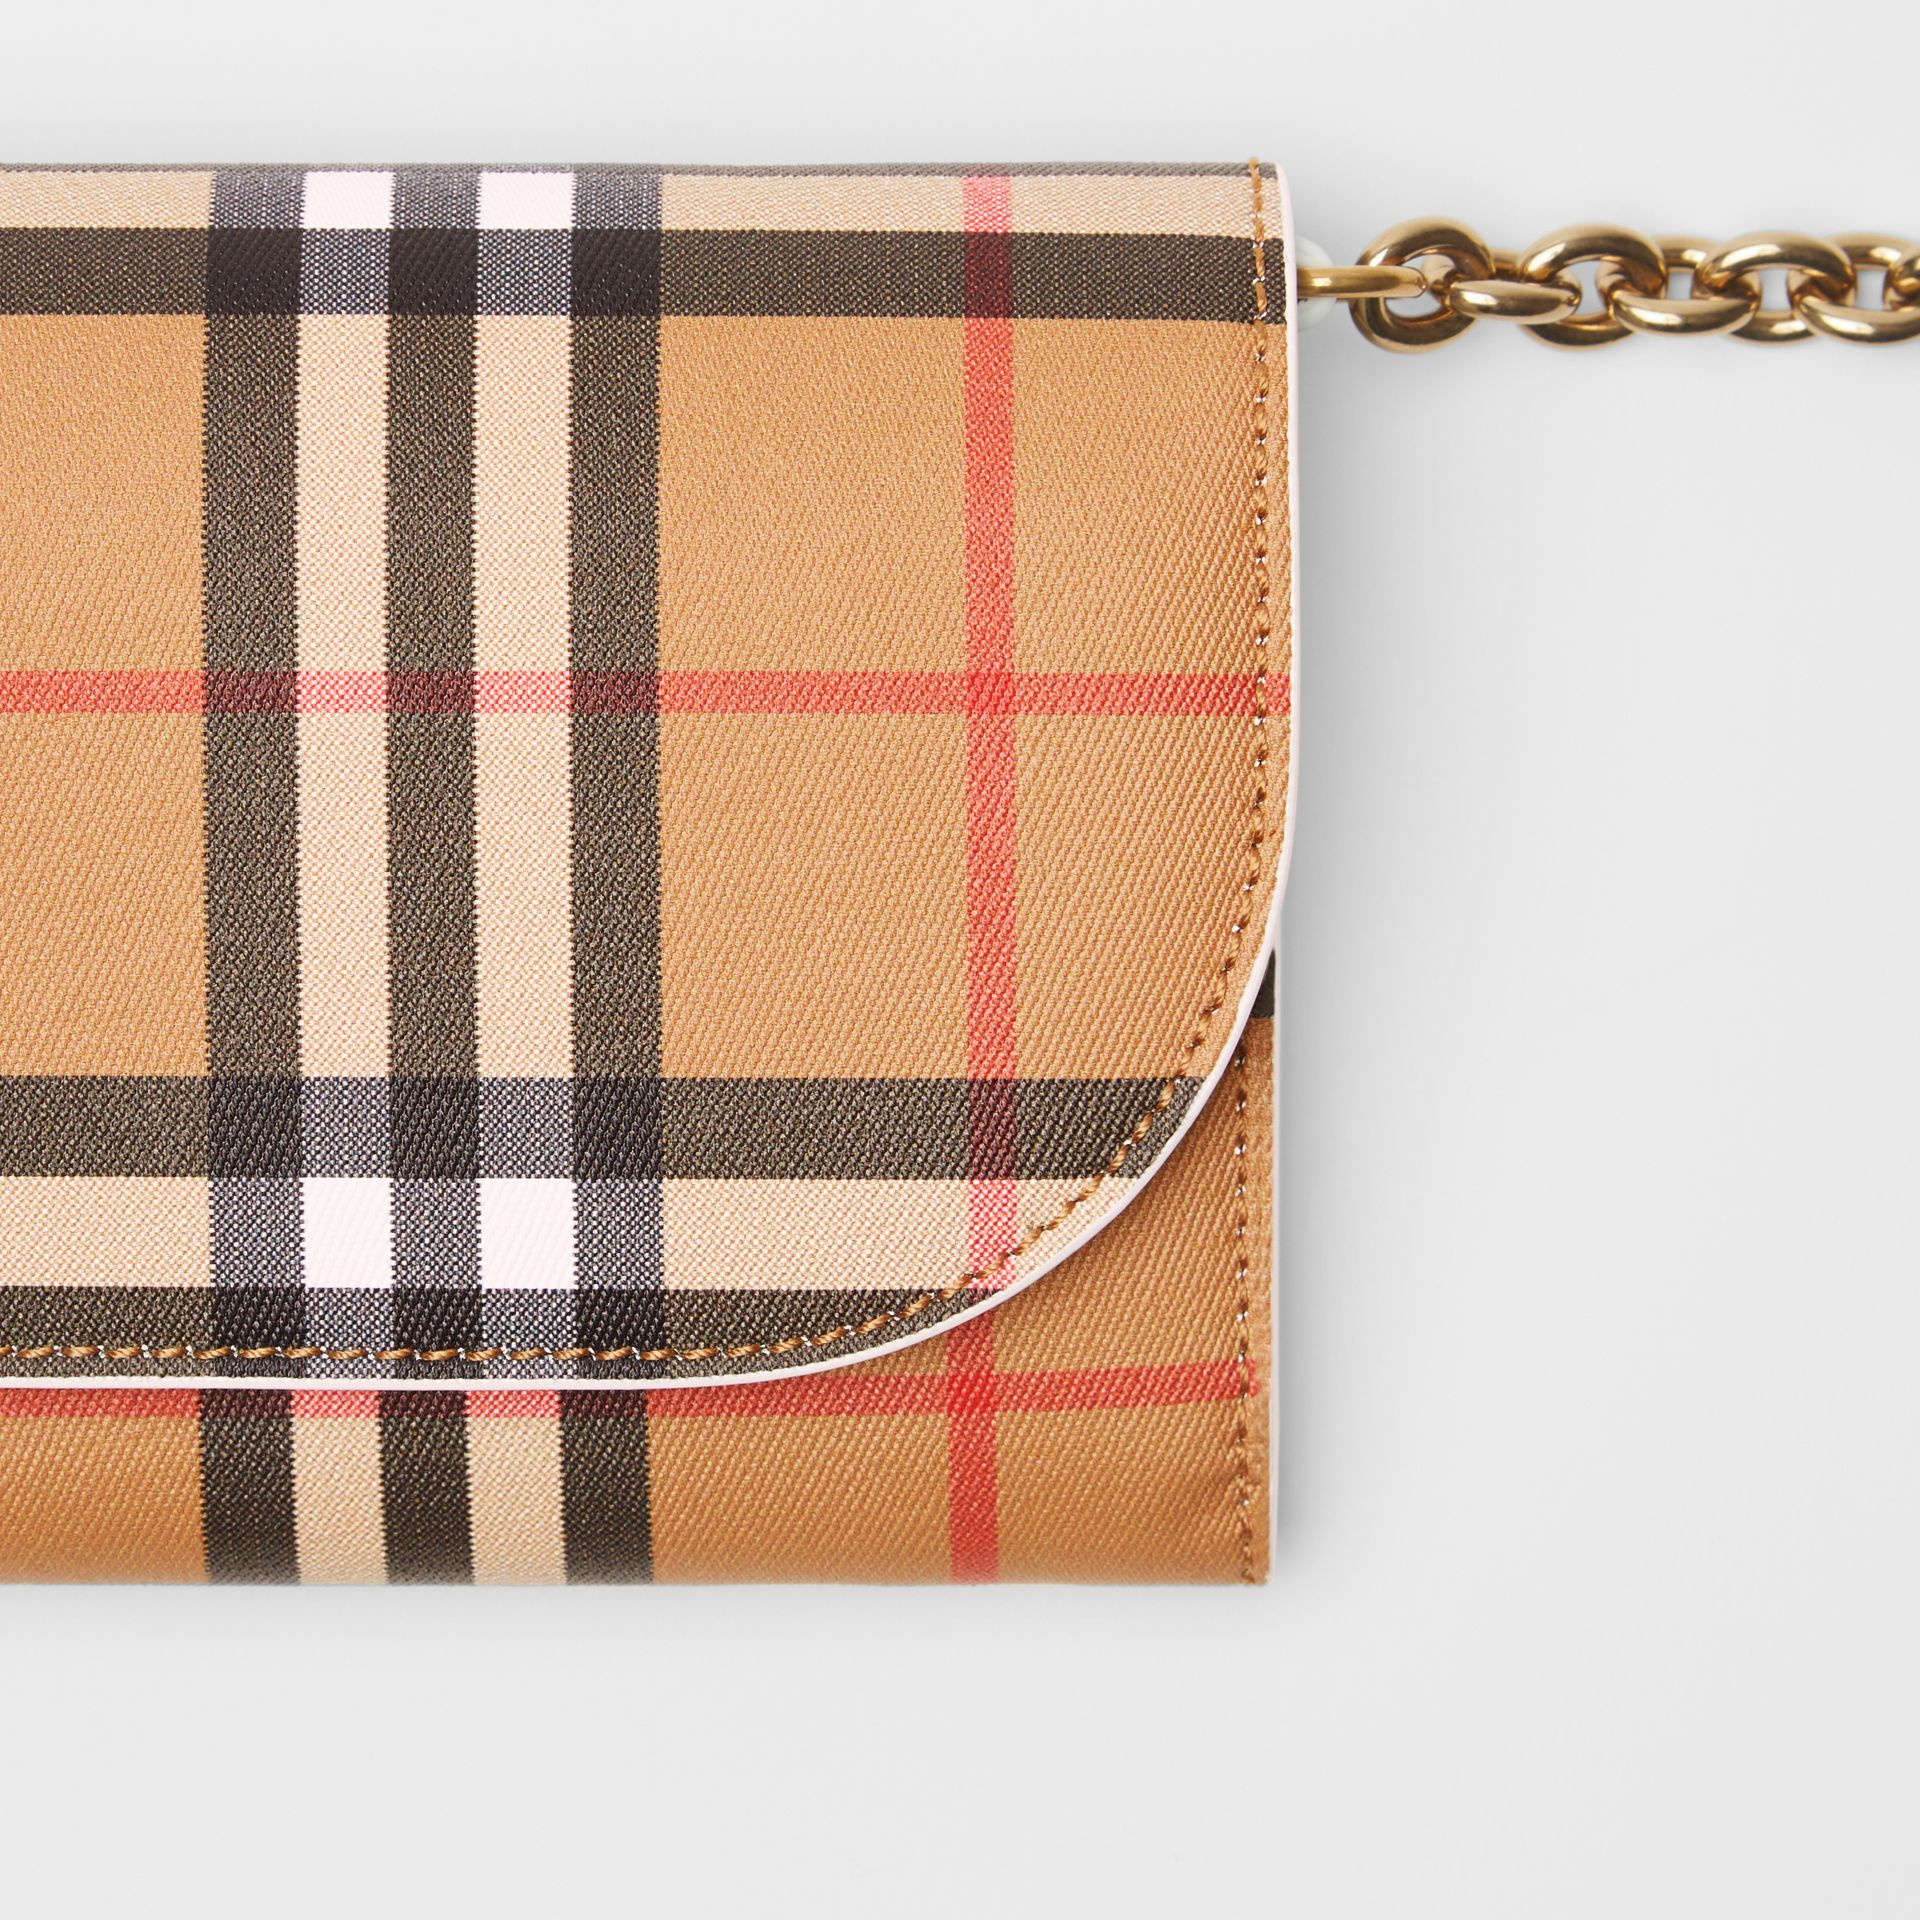 Vintage Check and Leather Wallet with Chain in Chalk White - Women | Burberry - gallery image 1